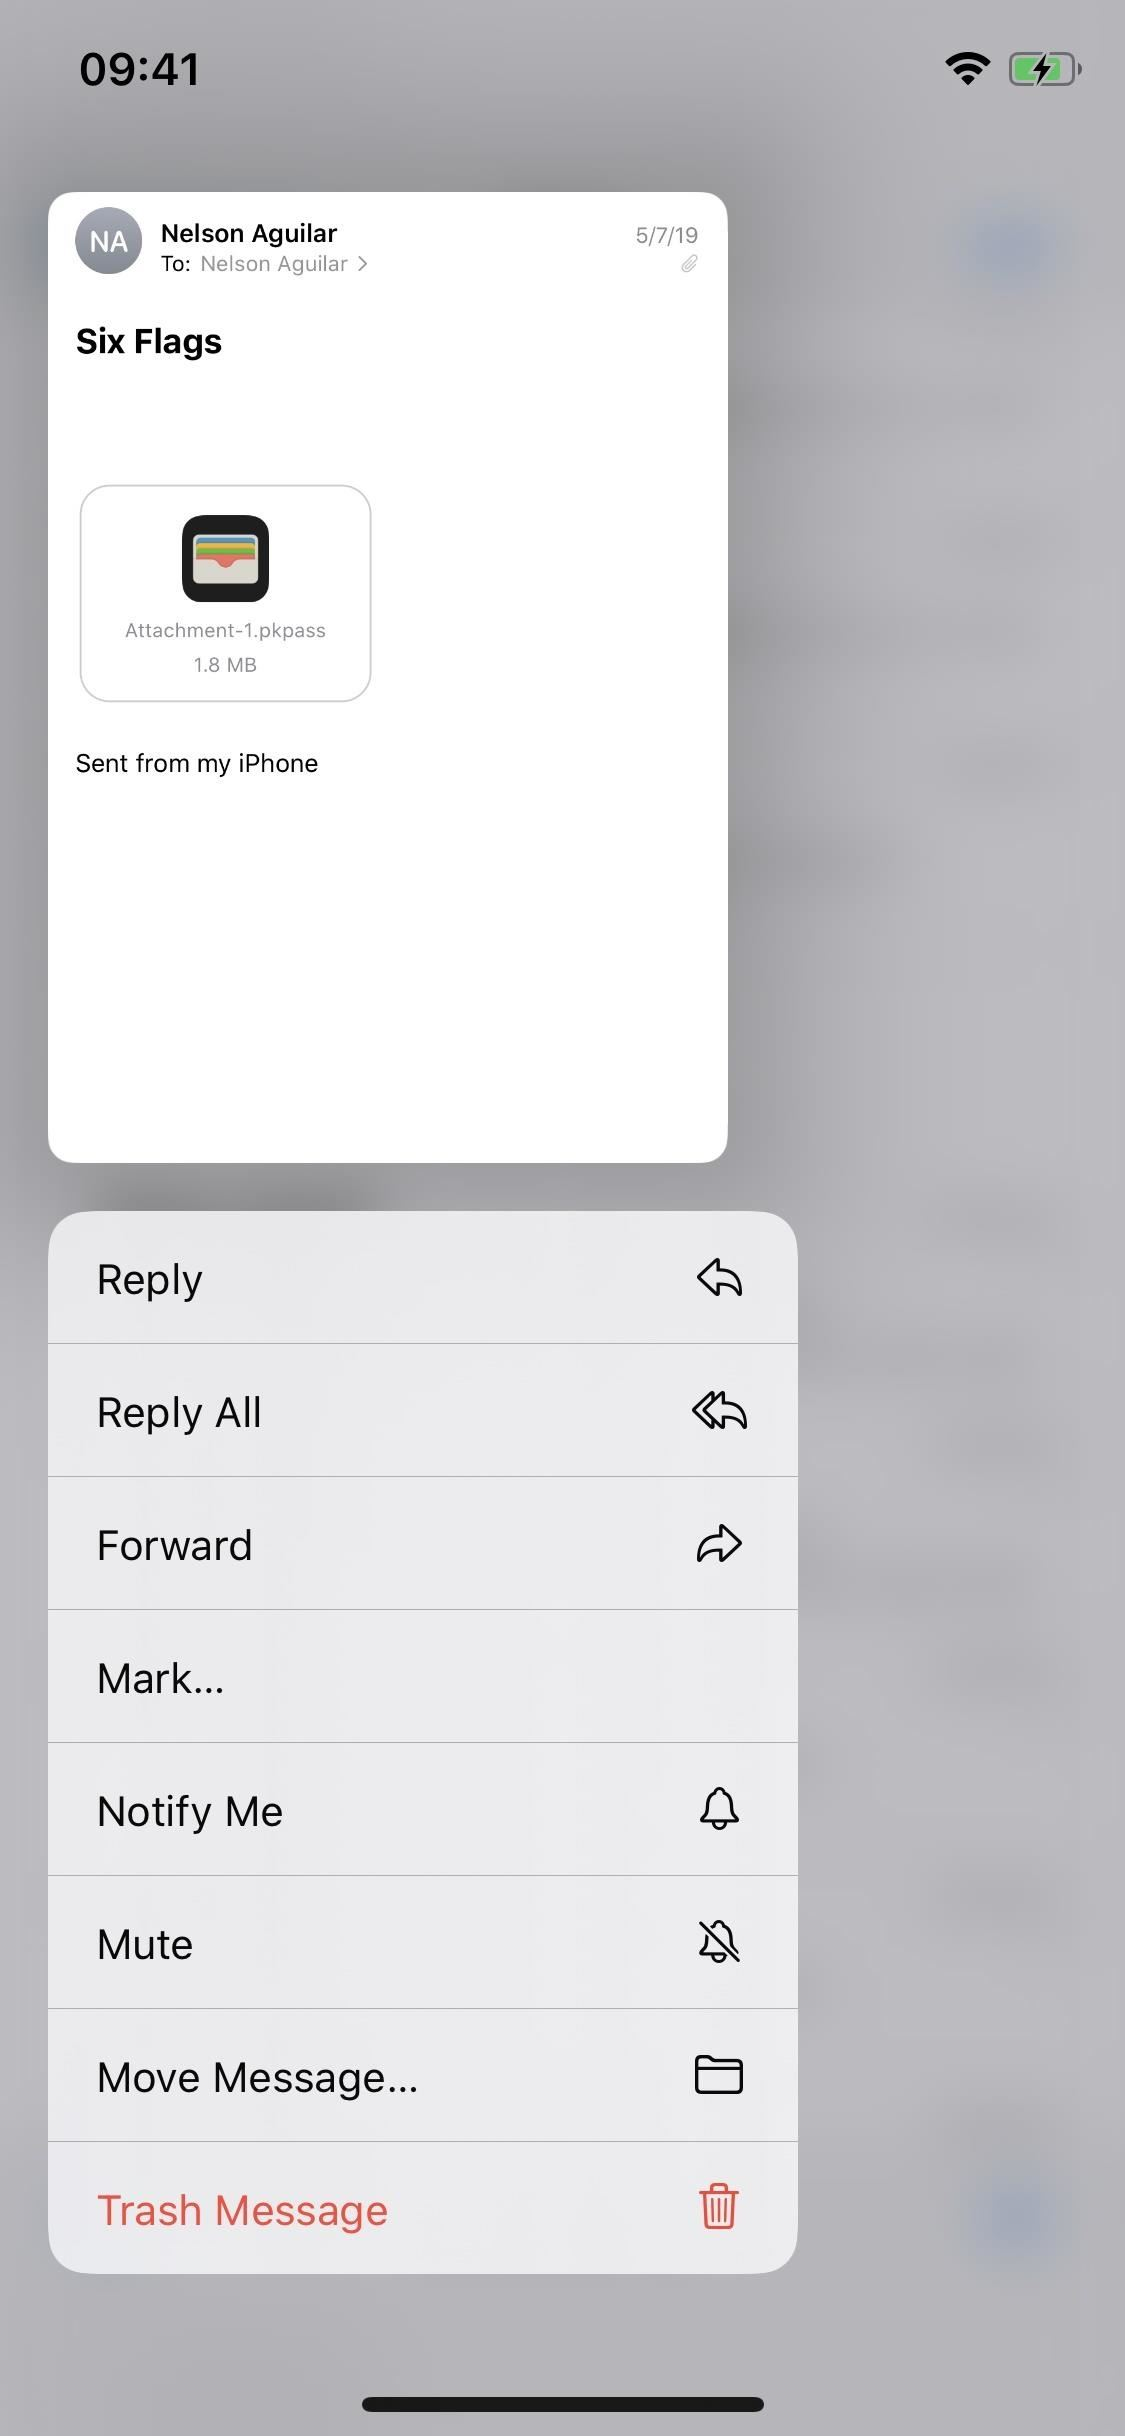 22 new features in the iOS 13 mail app that let you do the art of email